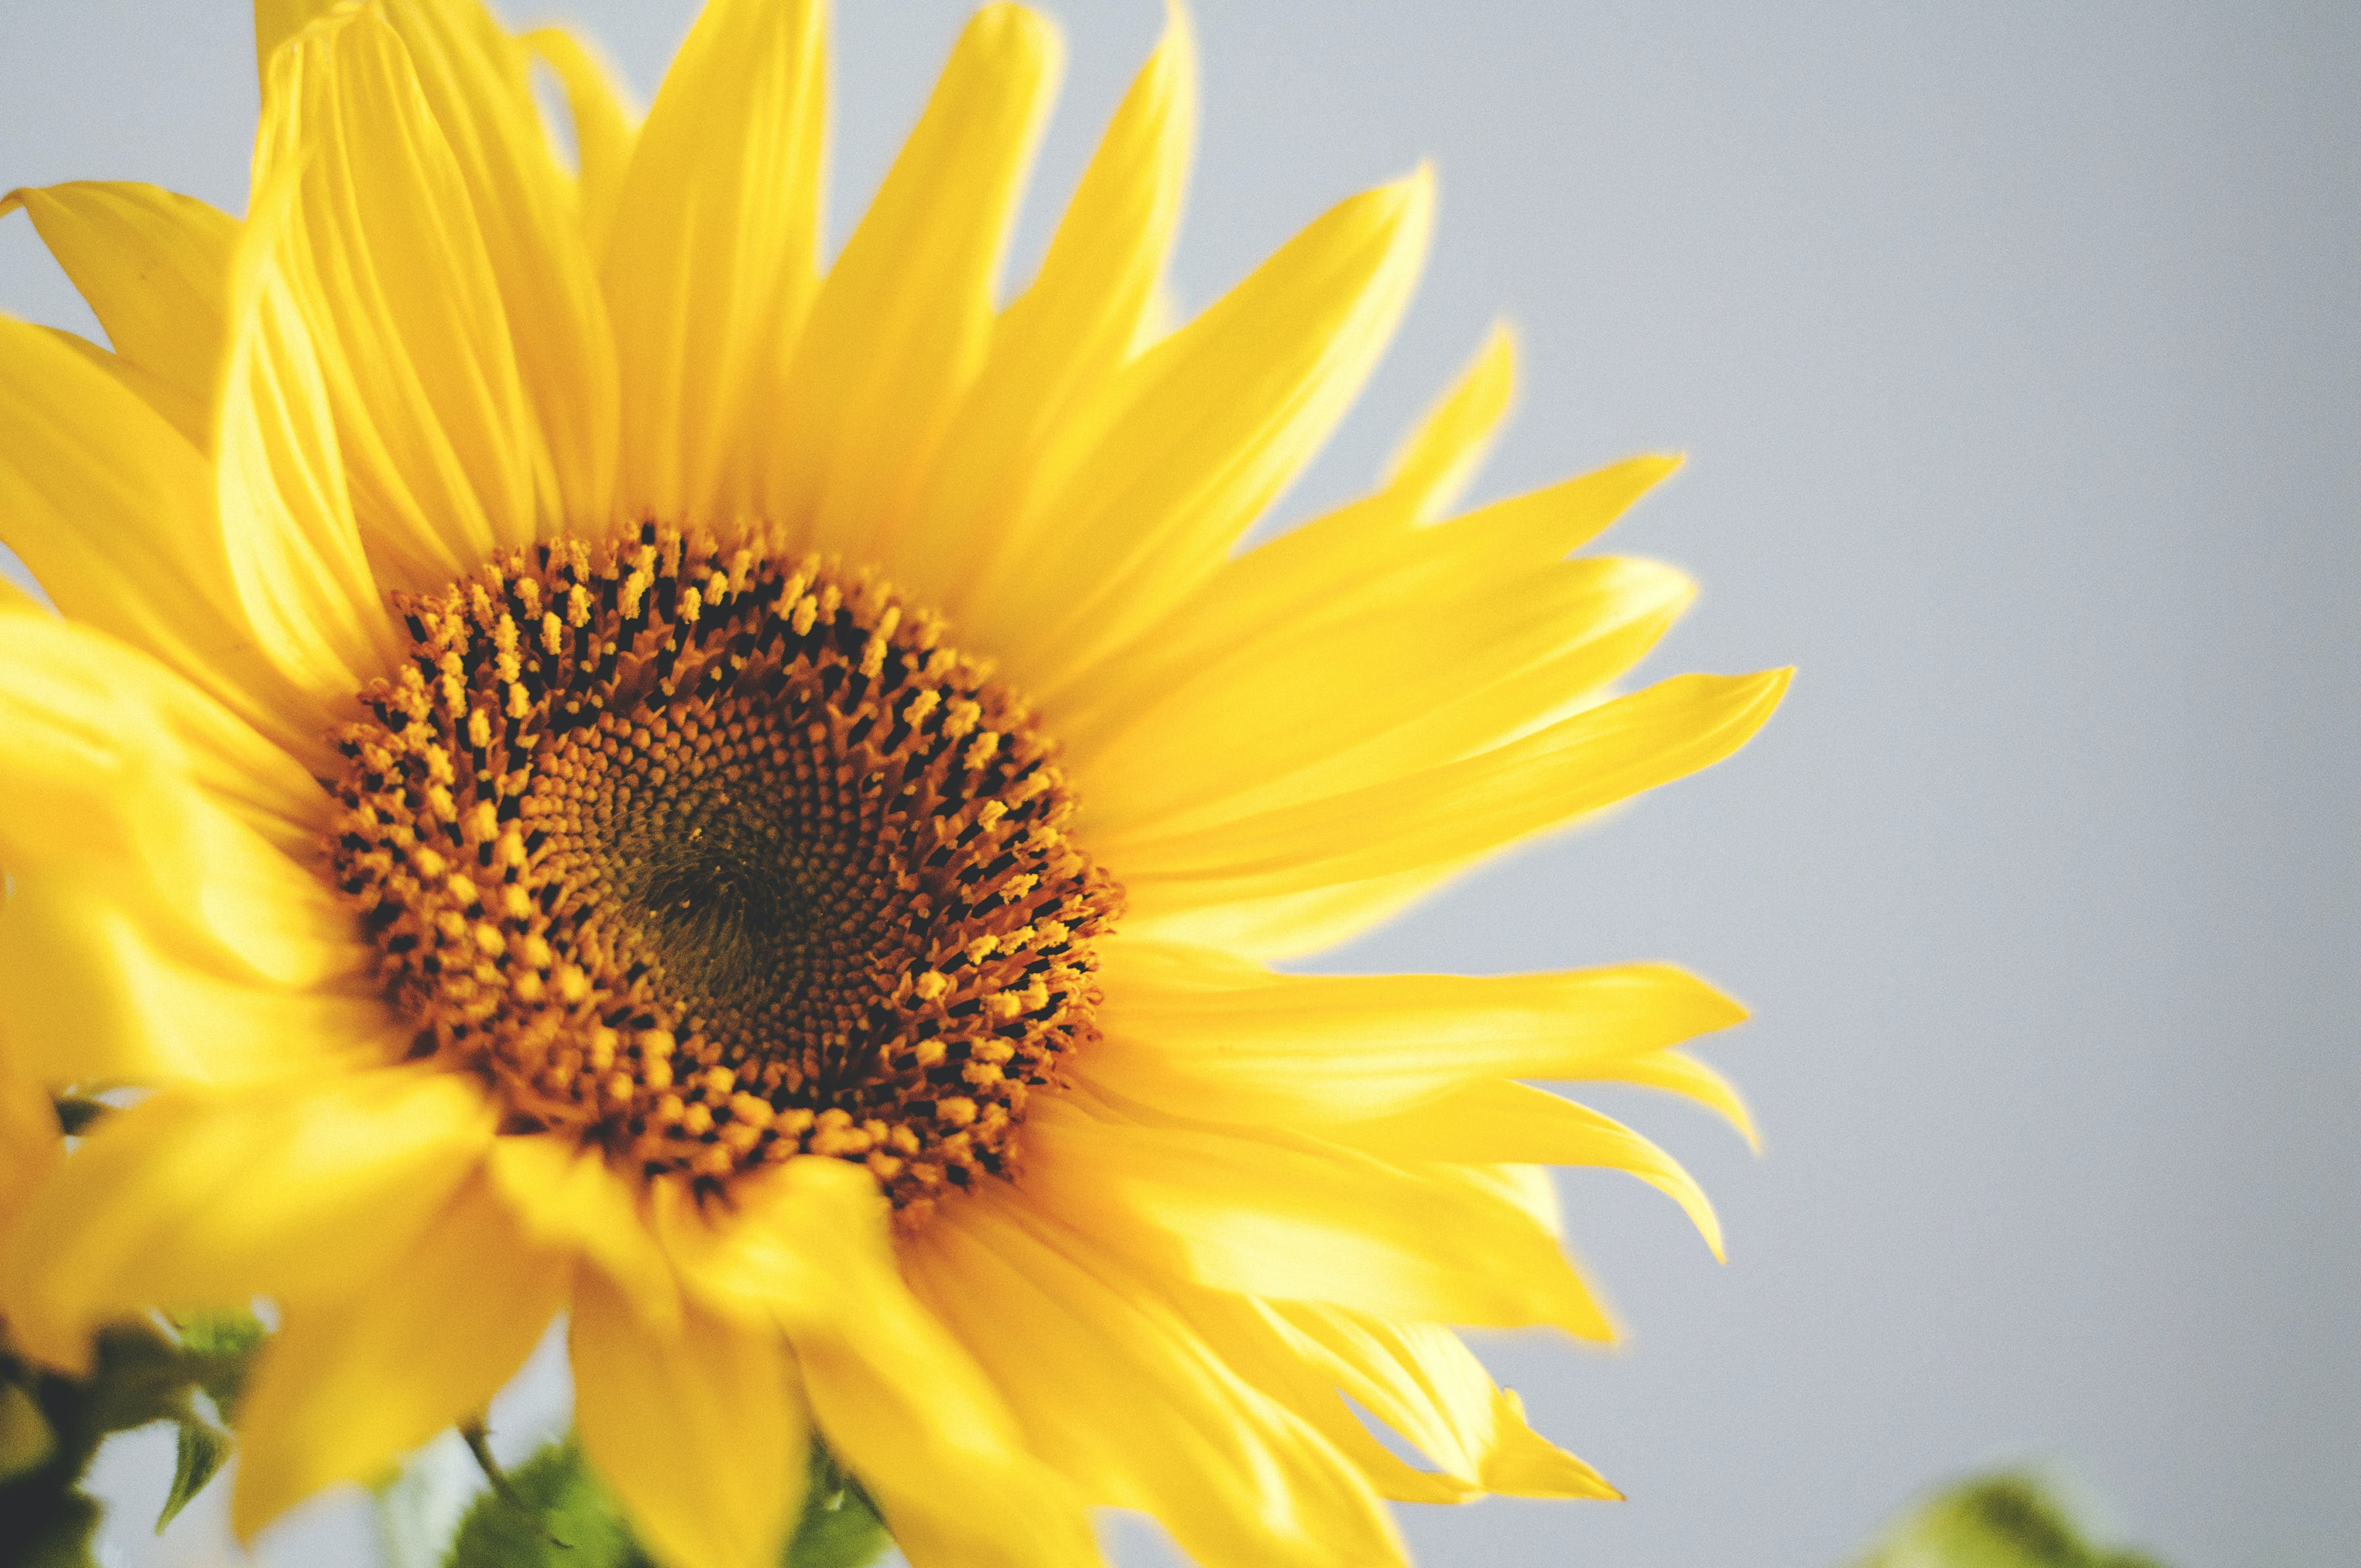 Shallow Focus Photo of Sunflower